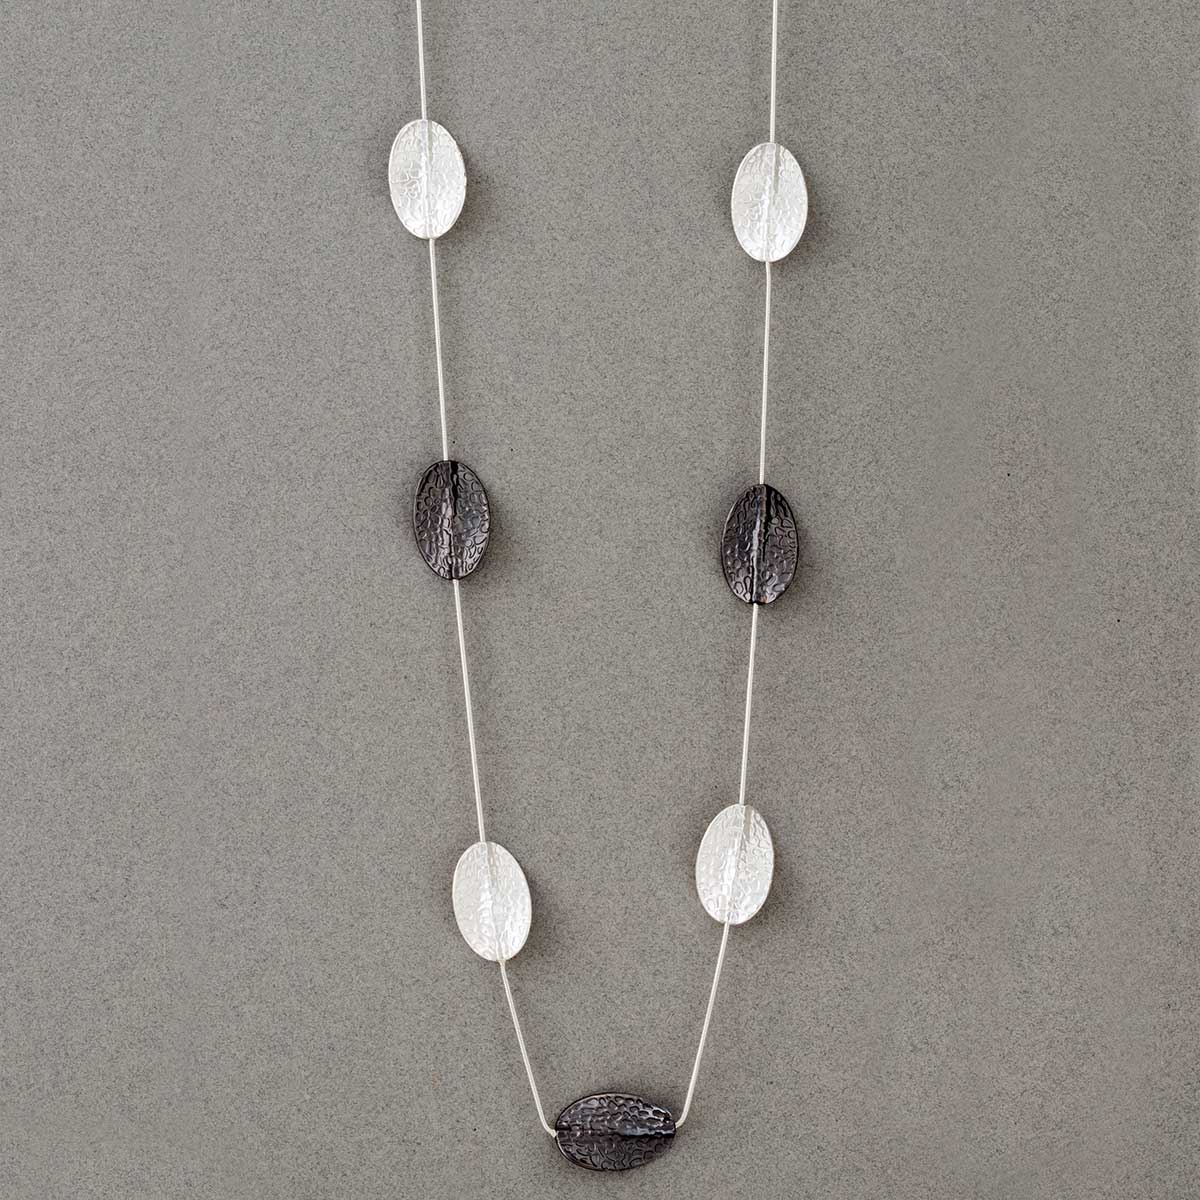 Silver and Pewter Mini Leaf Necklace on Chain